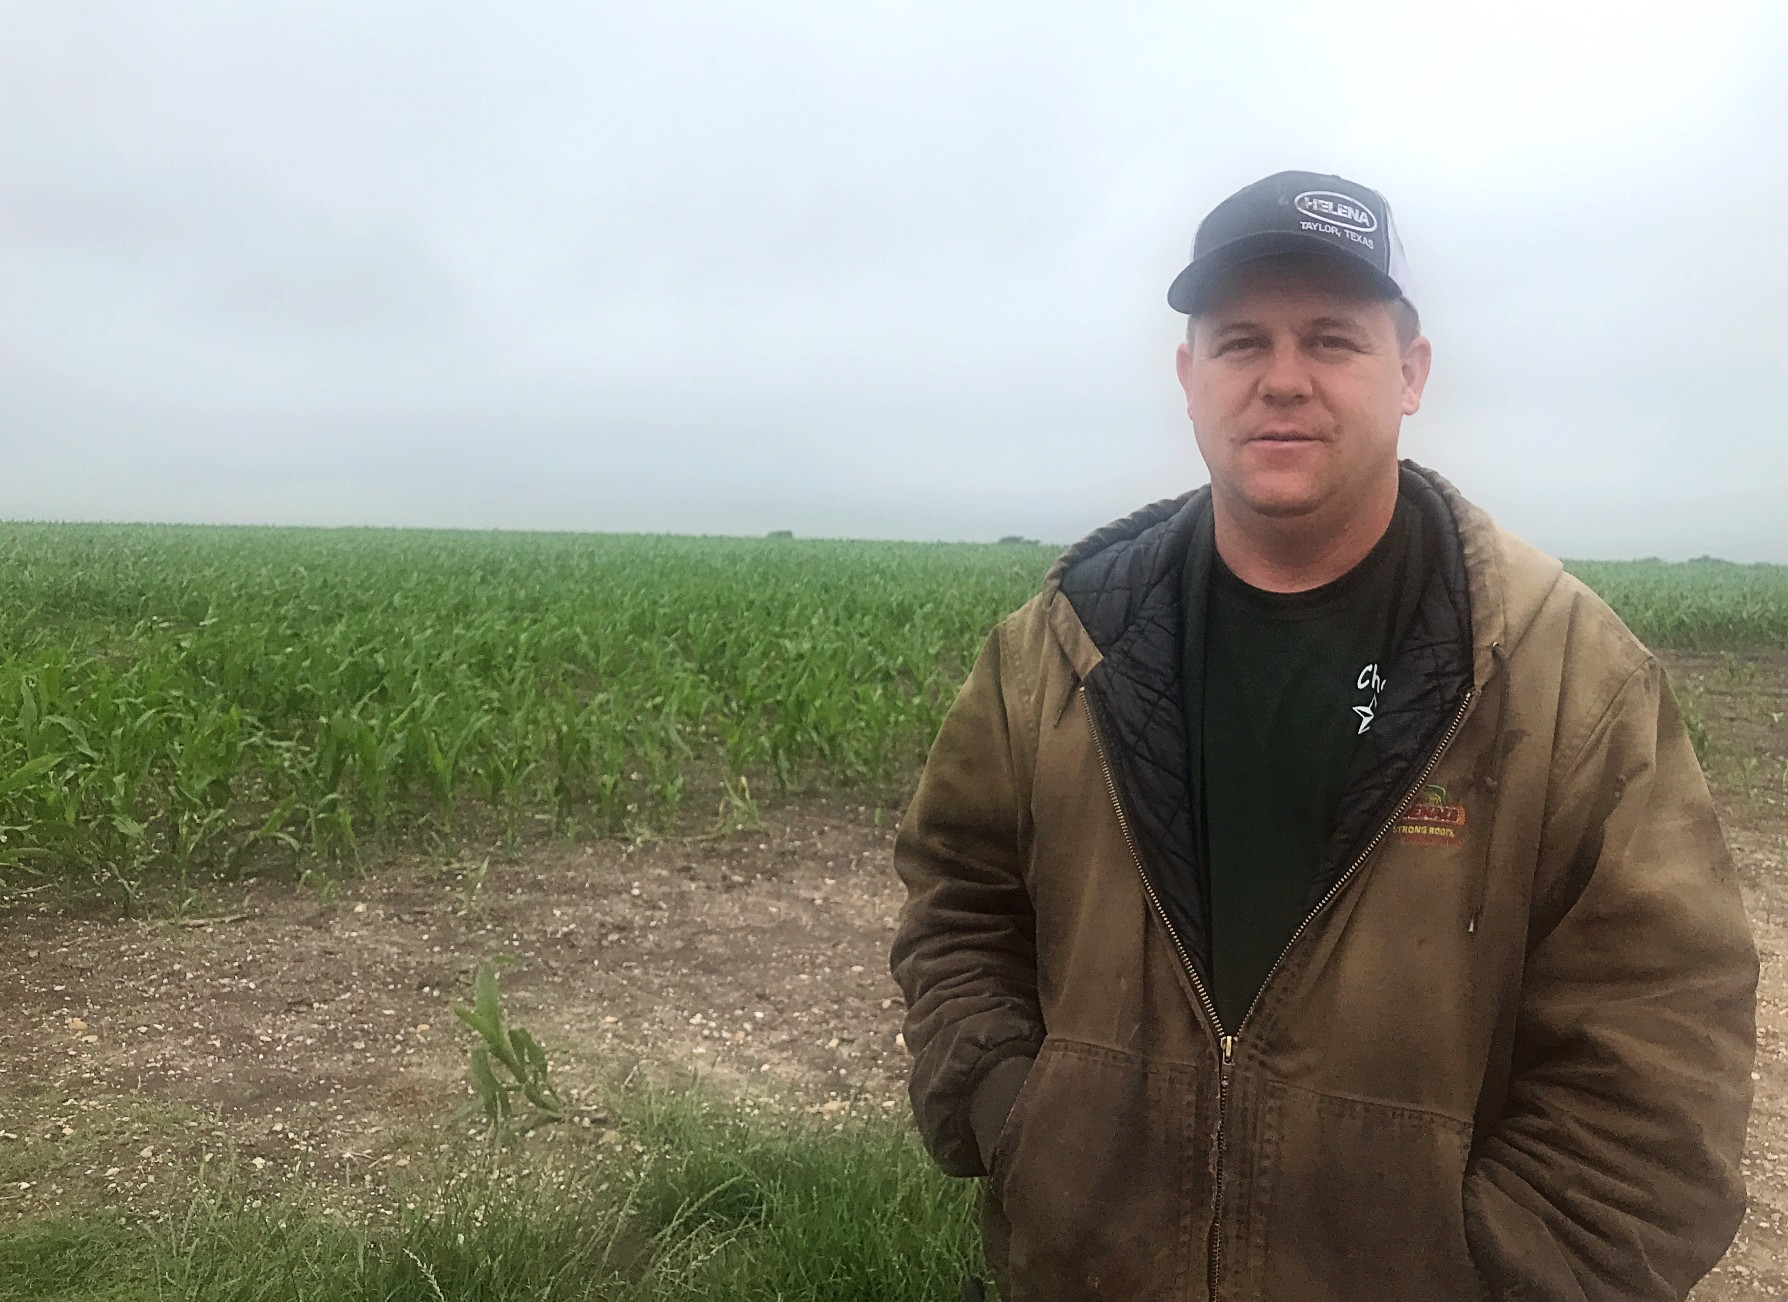 Mark Prinz stands in front of his corn crops at Prinz Farms in Coupland, TX a day after replanting them from a hailstorm. (KXAN Photo/Faith Castle)